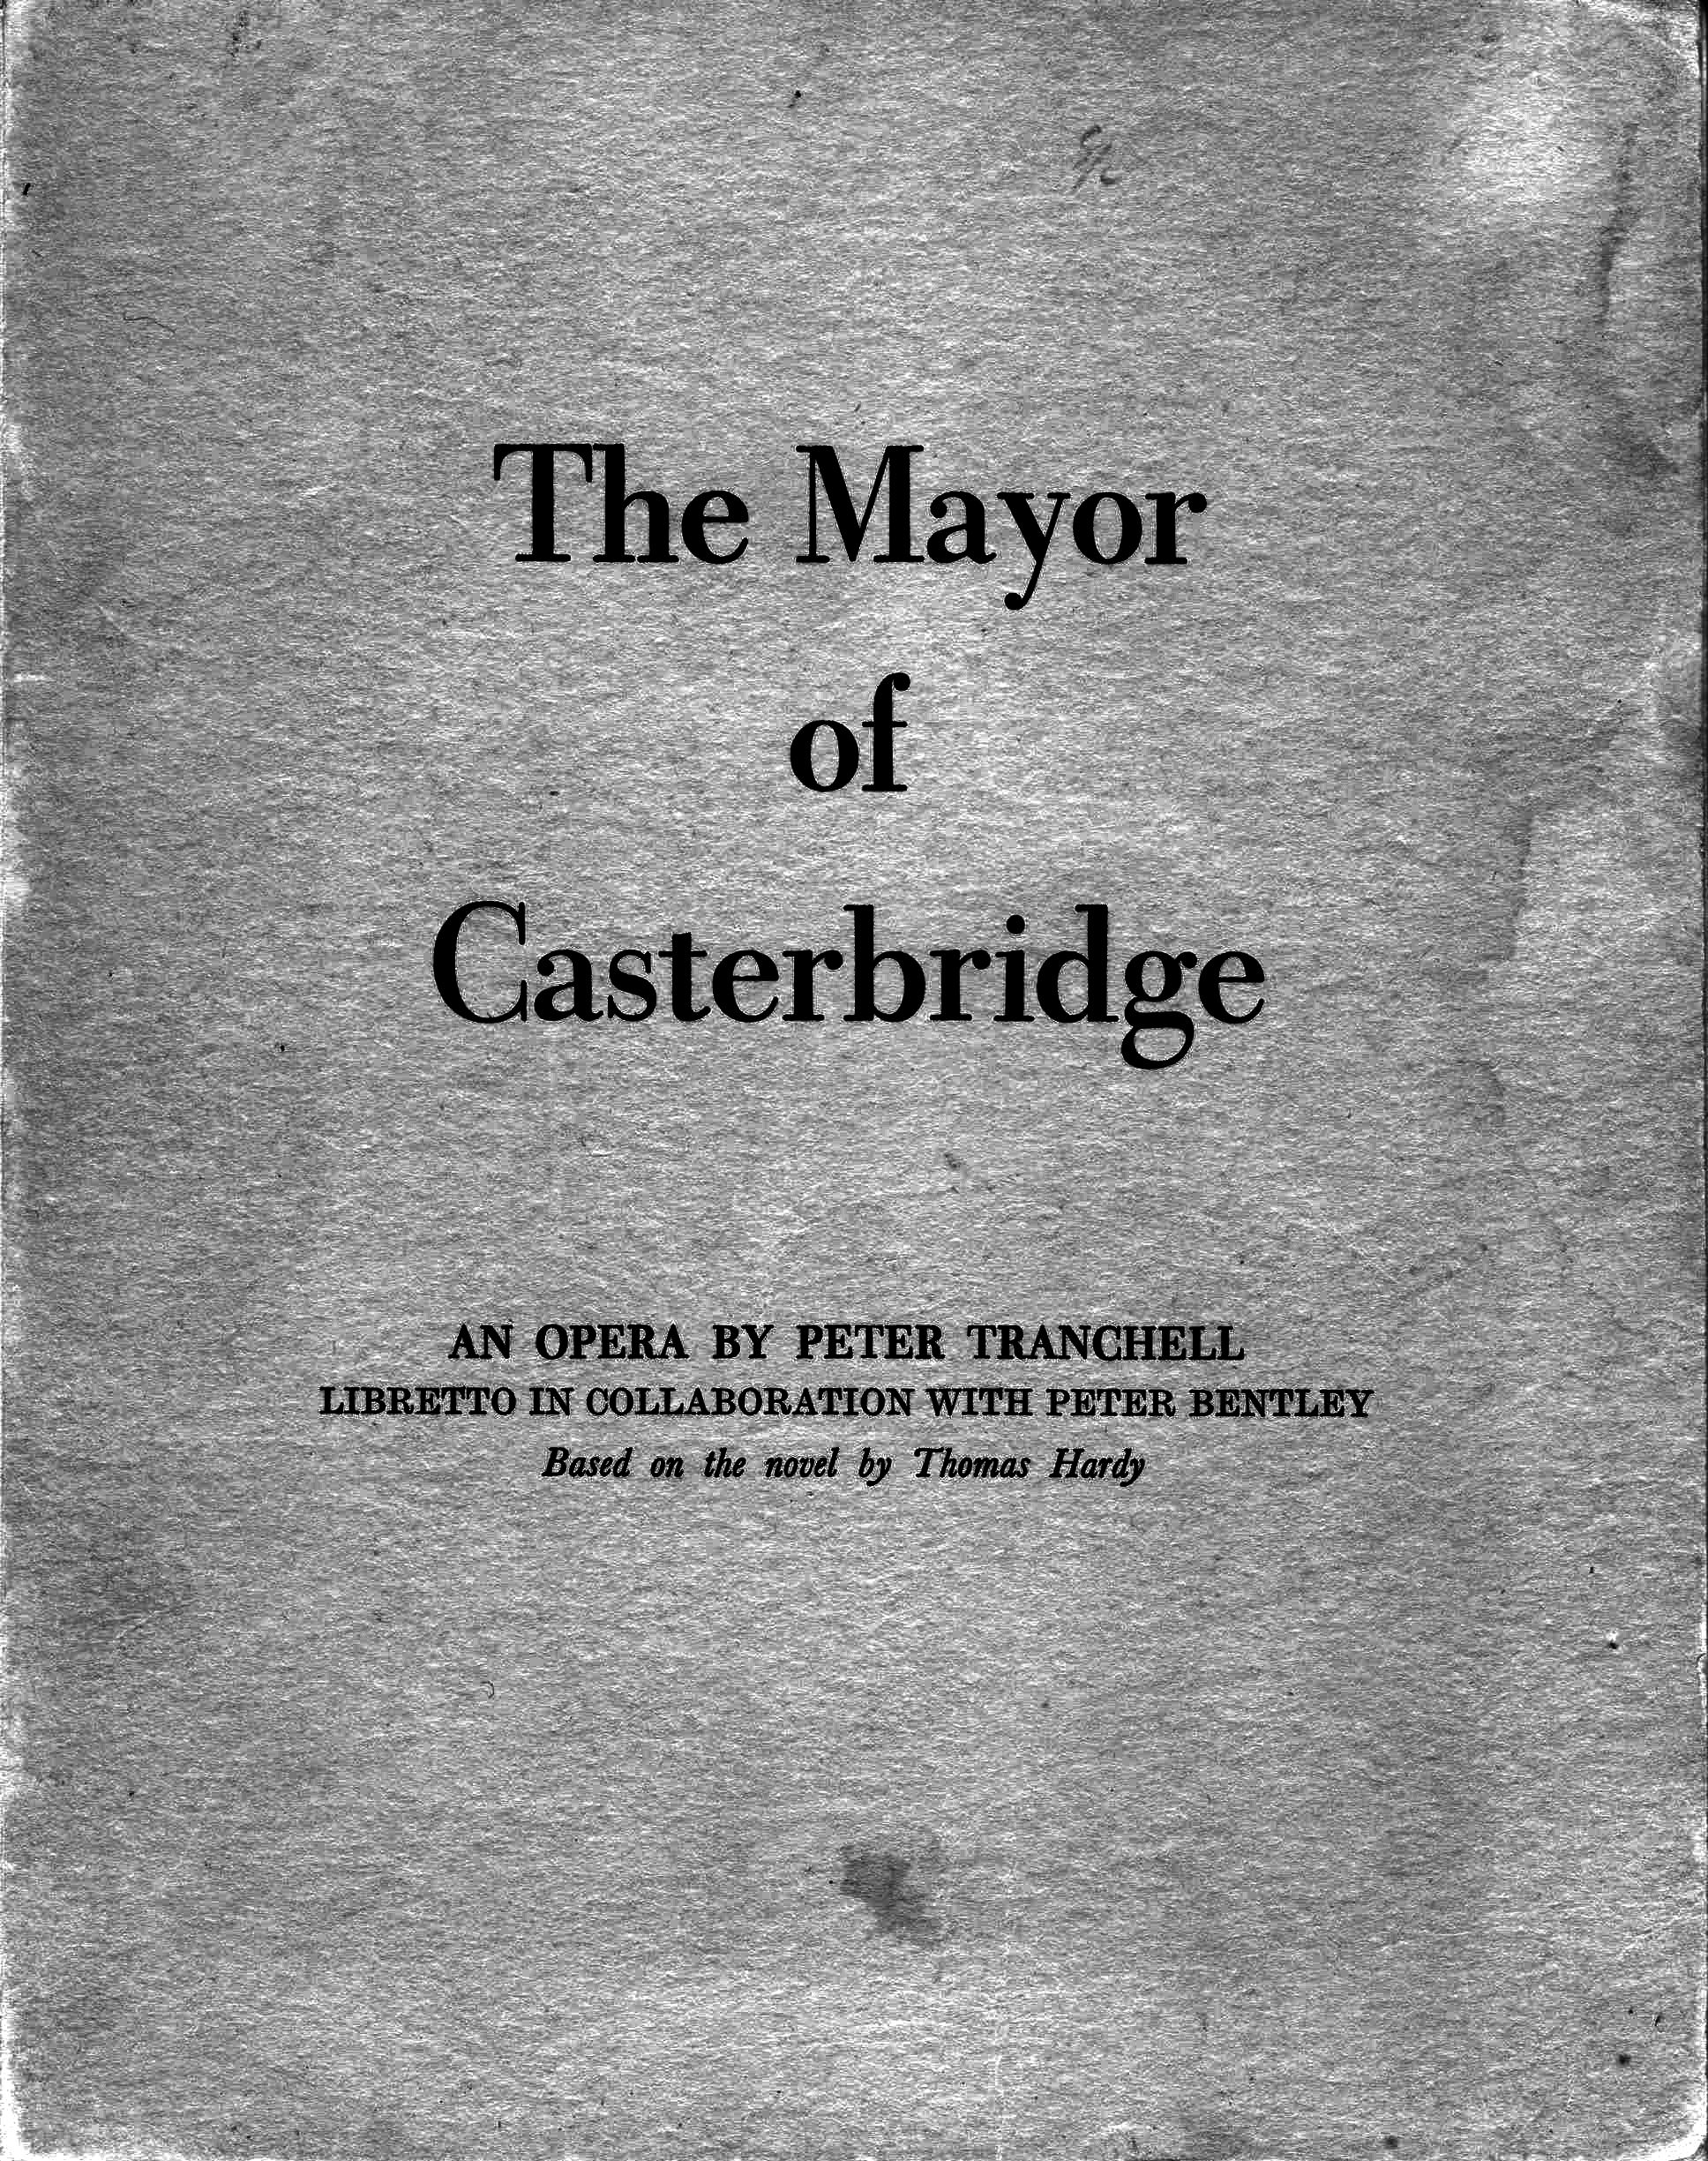 Front cover of the vocal score of The Mayor of Casterbridge, original edition, 1951